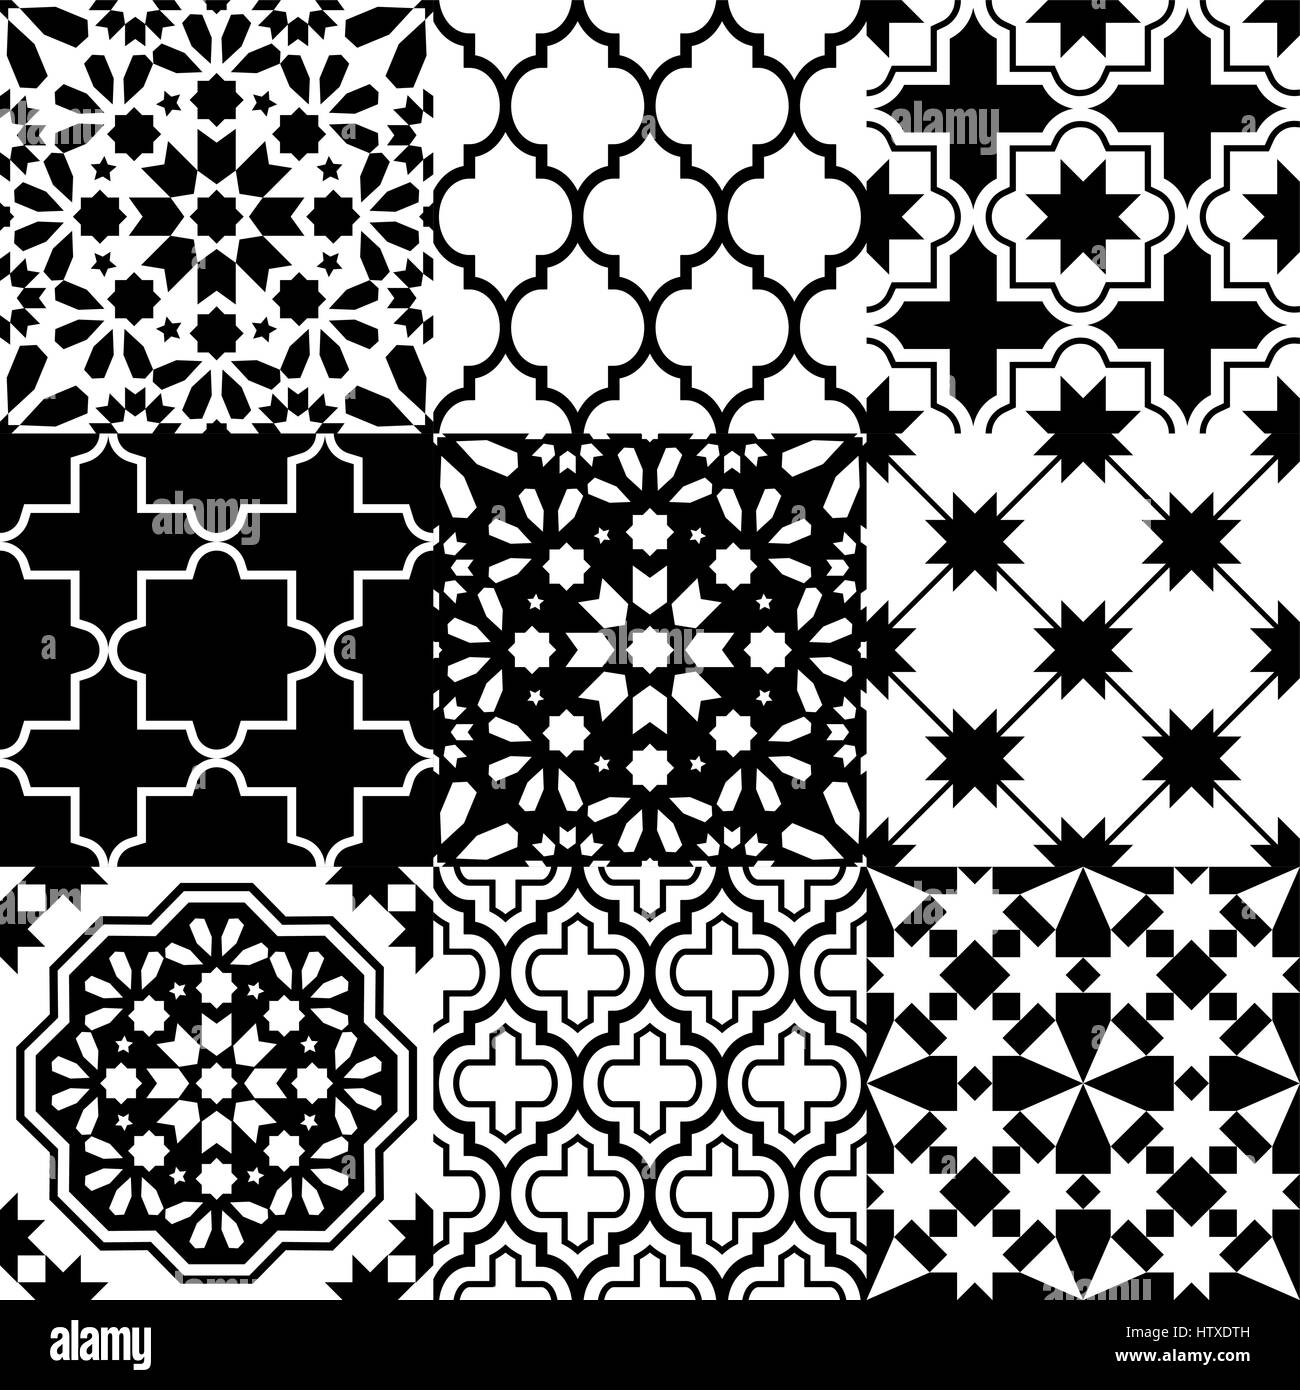 Vector of moroccan tile seamless pattern tile for design tile - Moroccan Tiles Design Seamless Black Pattern Collections